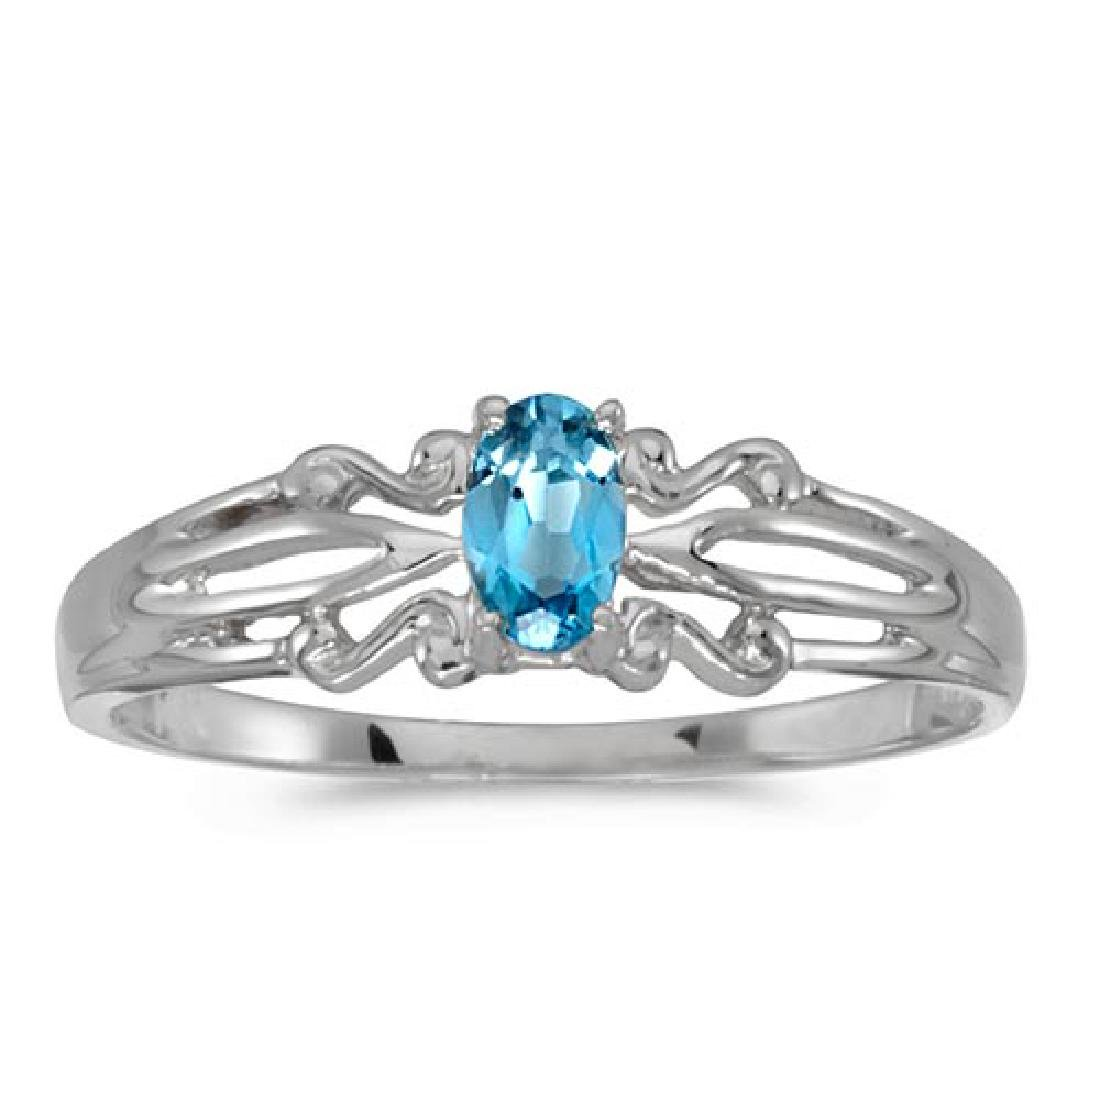 Certified 14k White Gold Oval Blue Topaz Ring